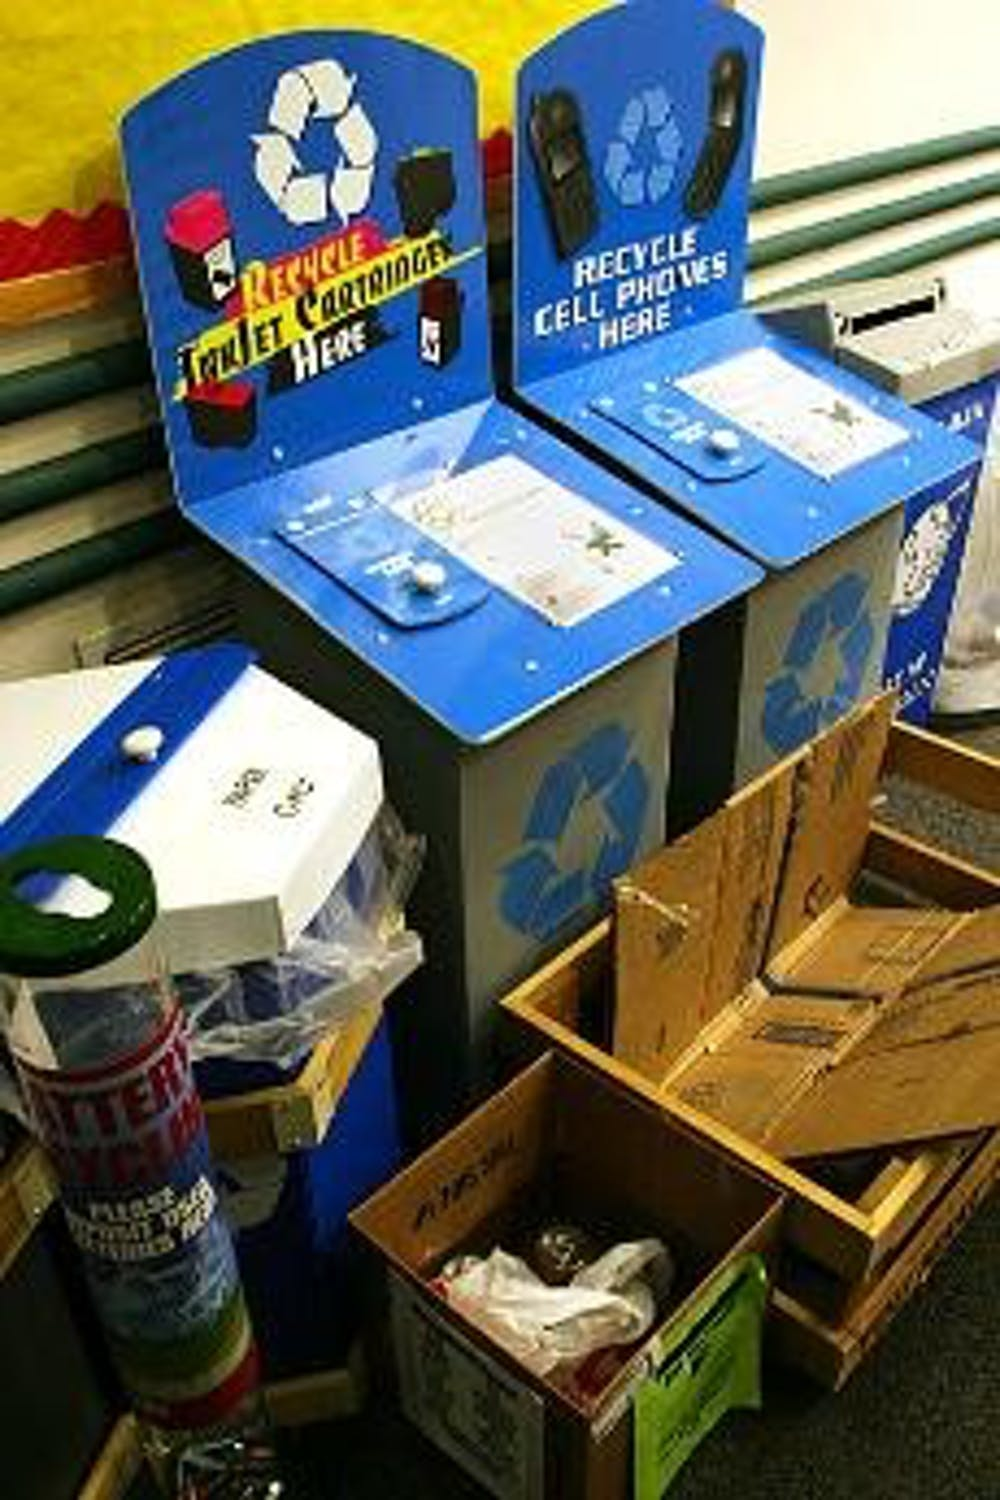 Campaign aims to make recycling easier